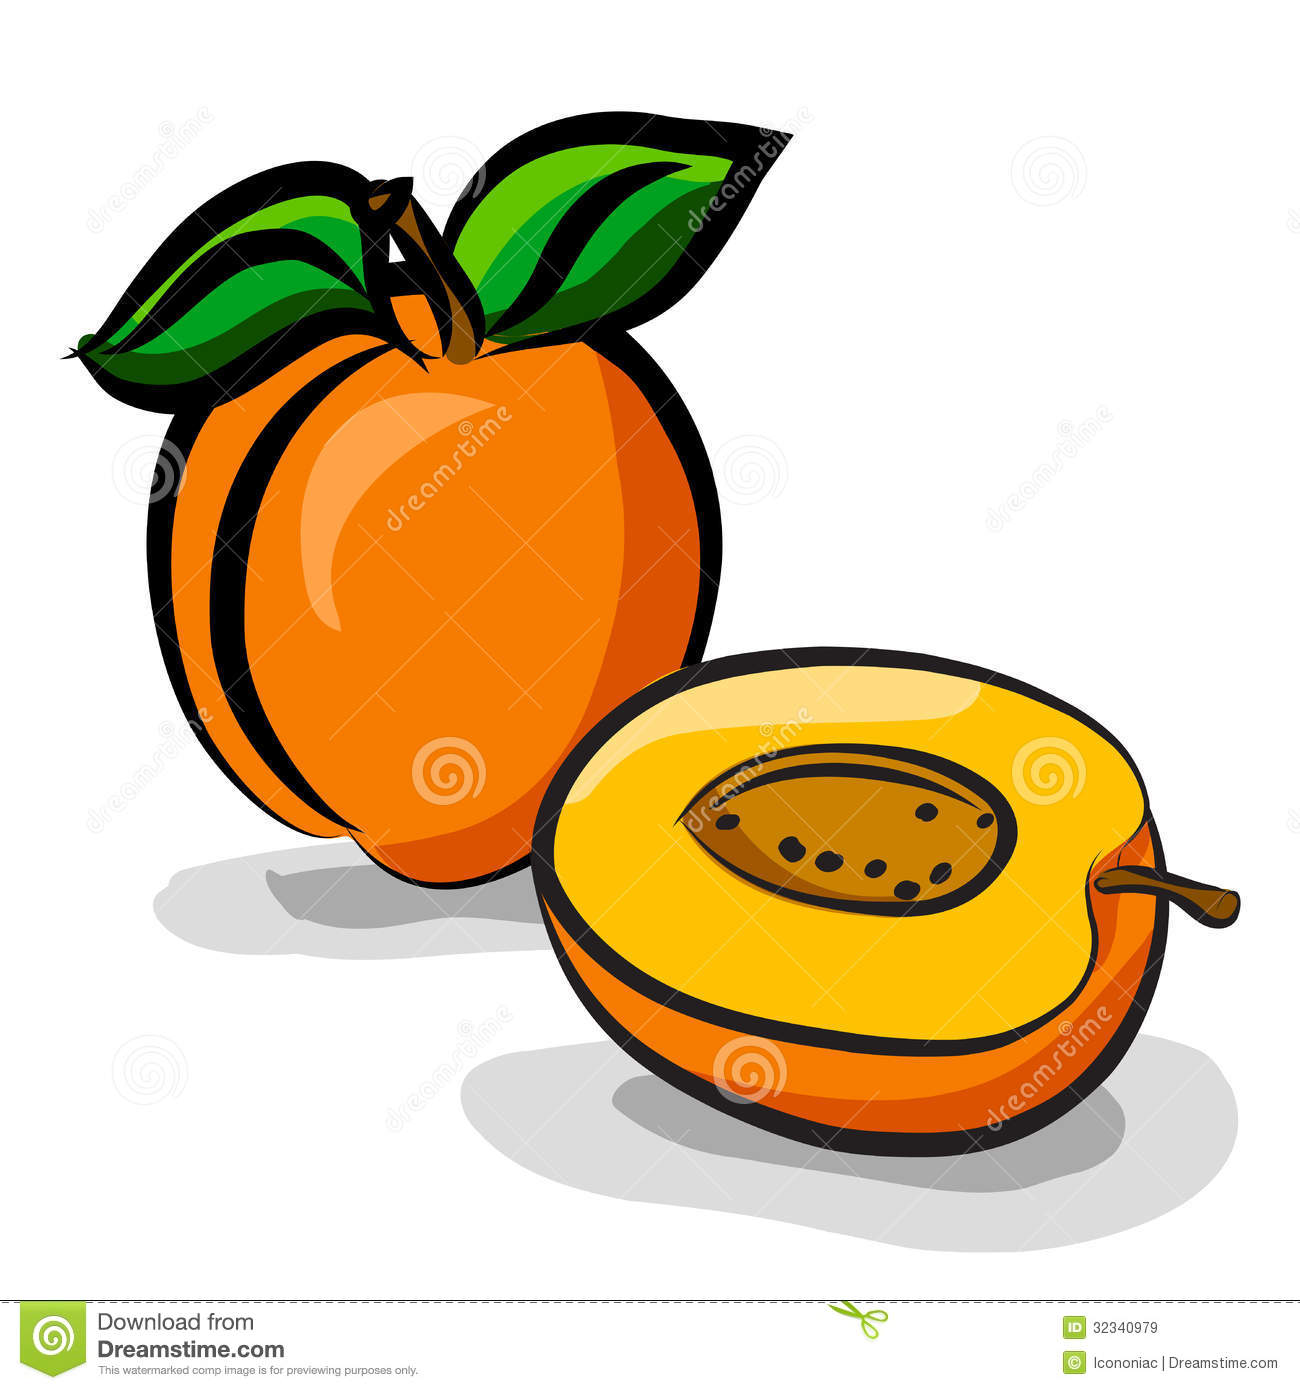 Apricot clipart #8, Download drawings